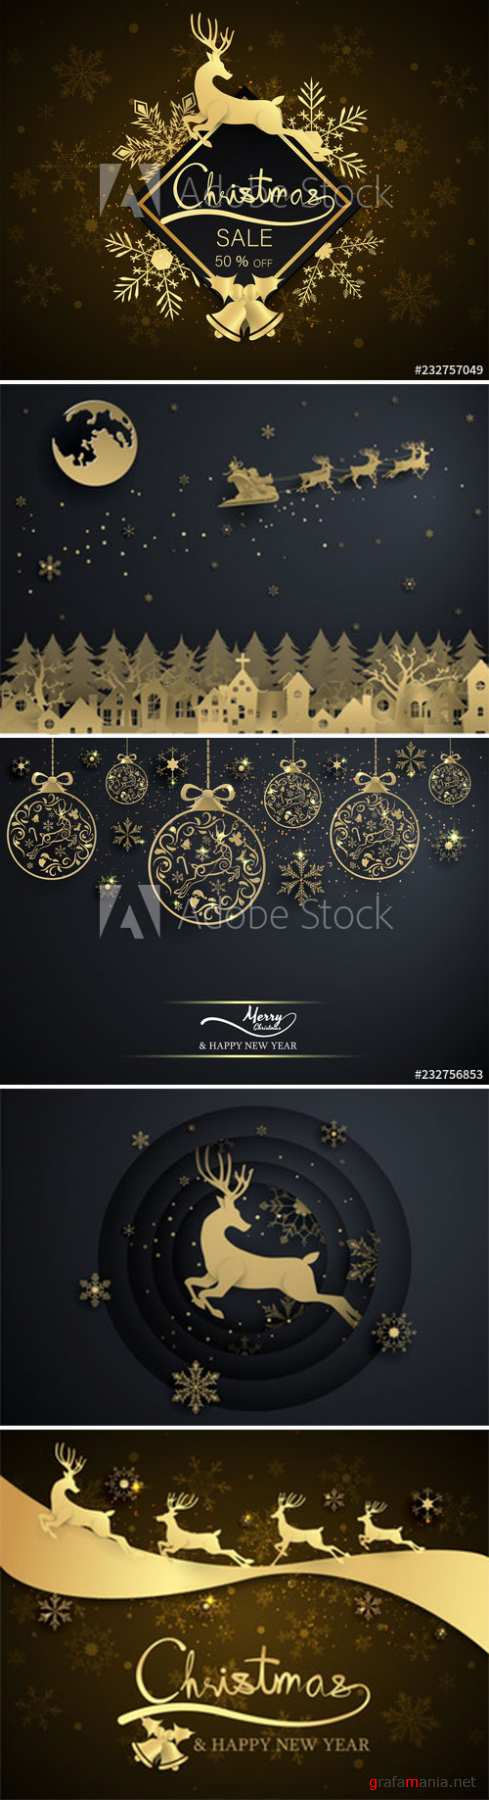 Gold snowflake and decoration christmas ball on black background, merry christmas, happy new year